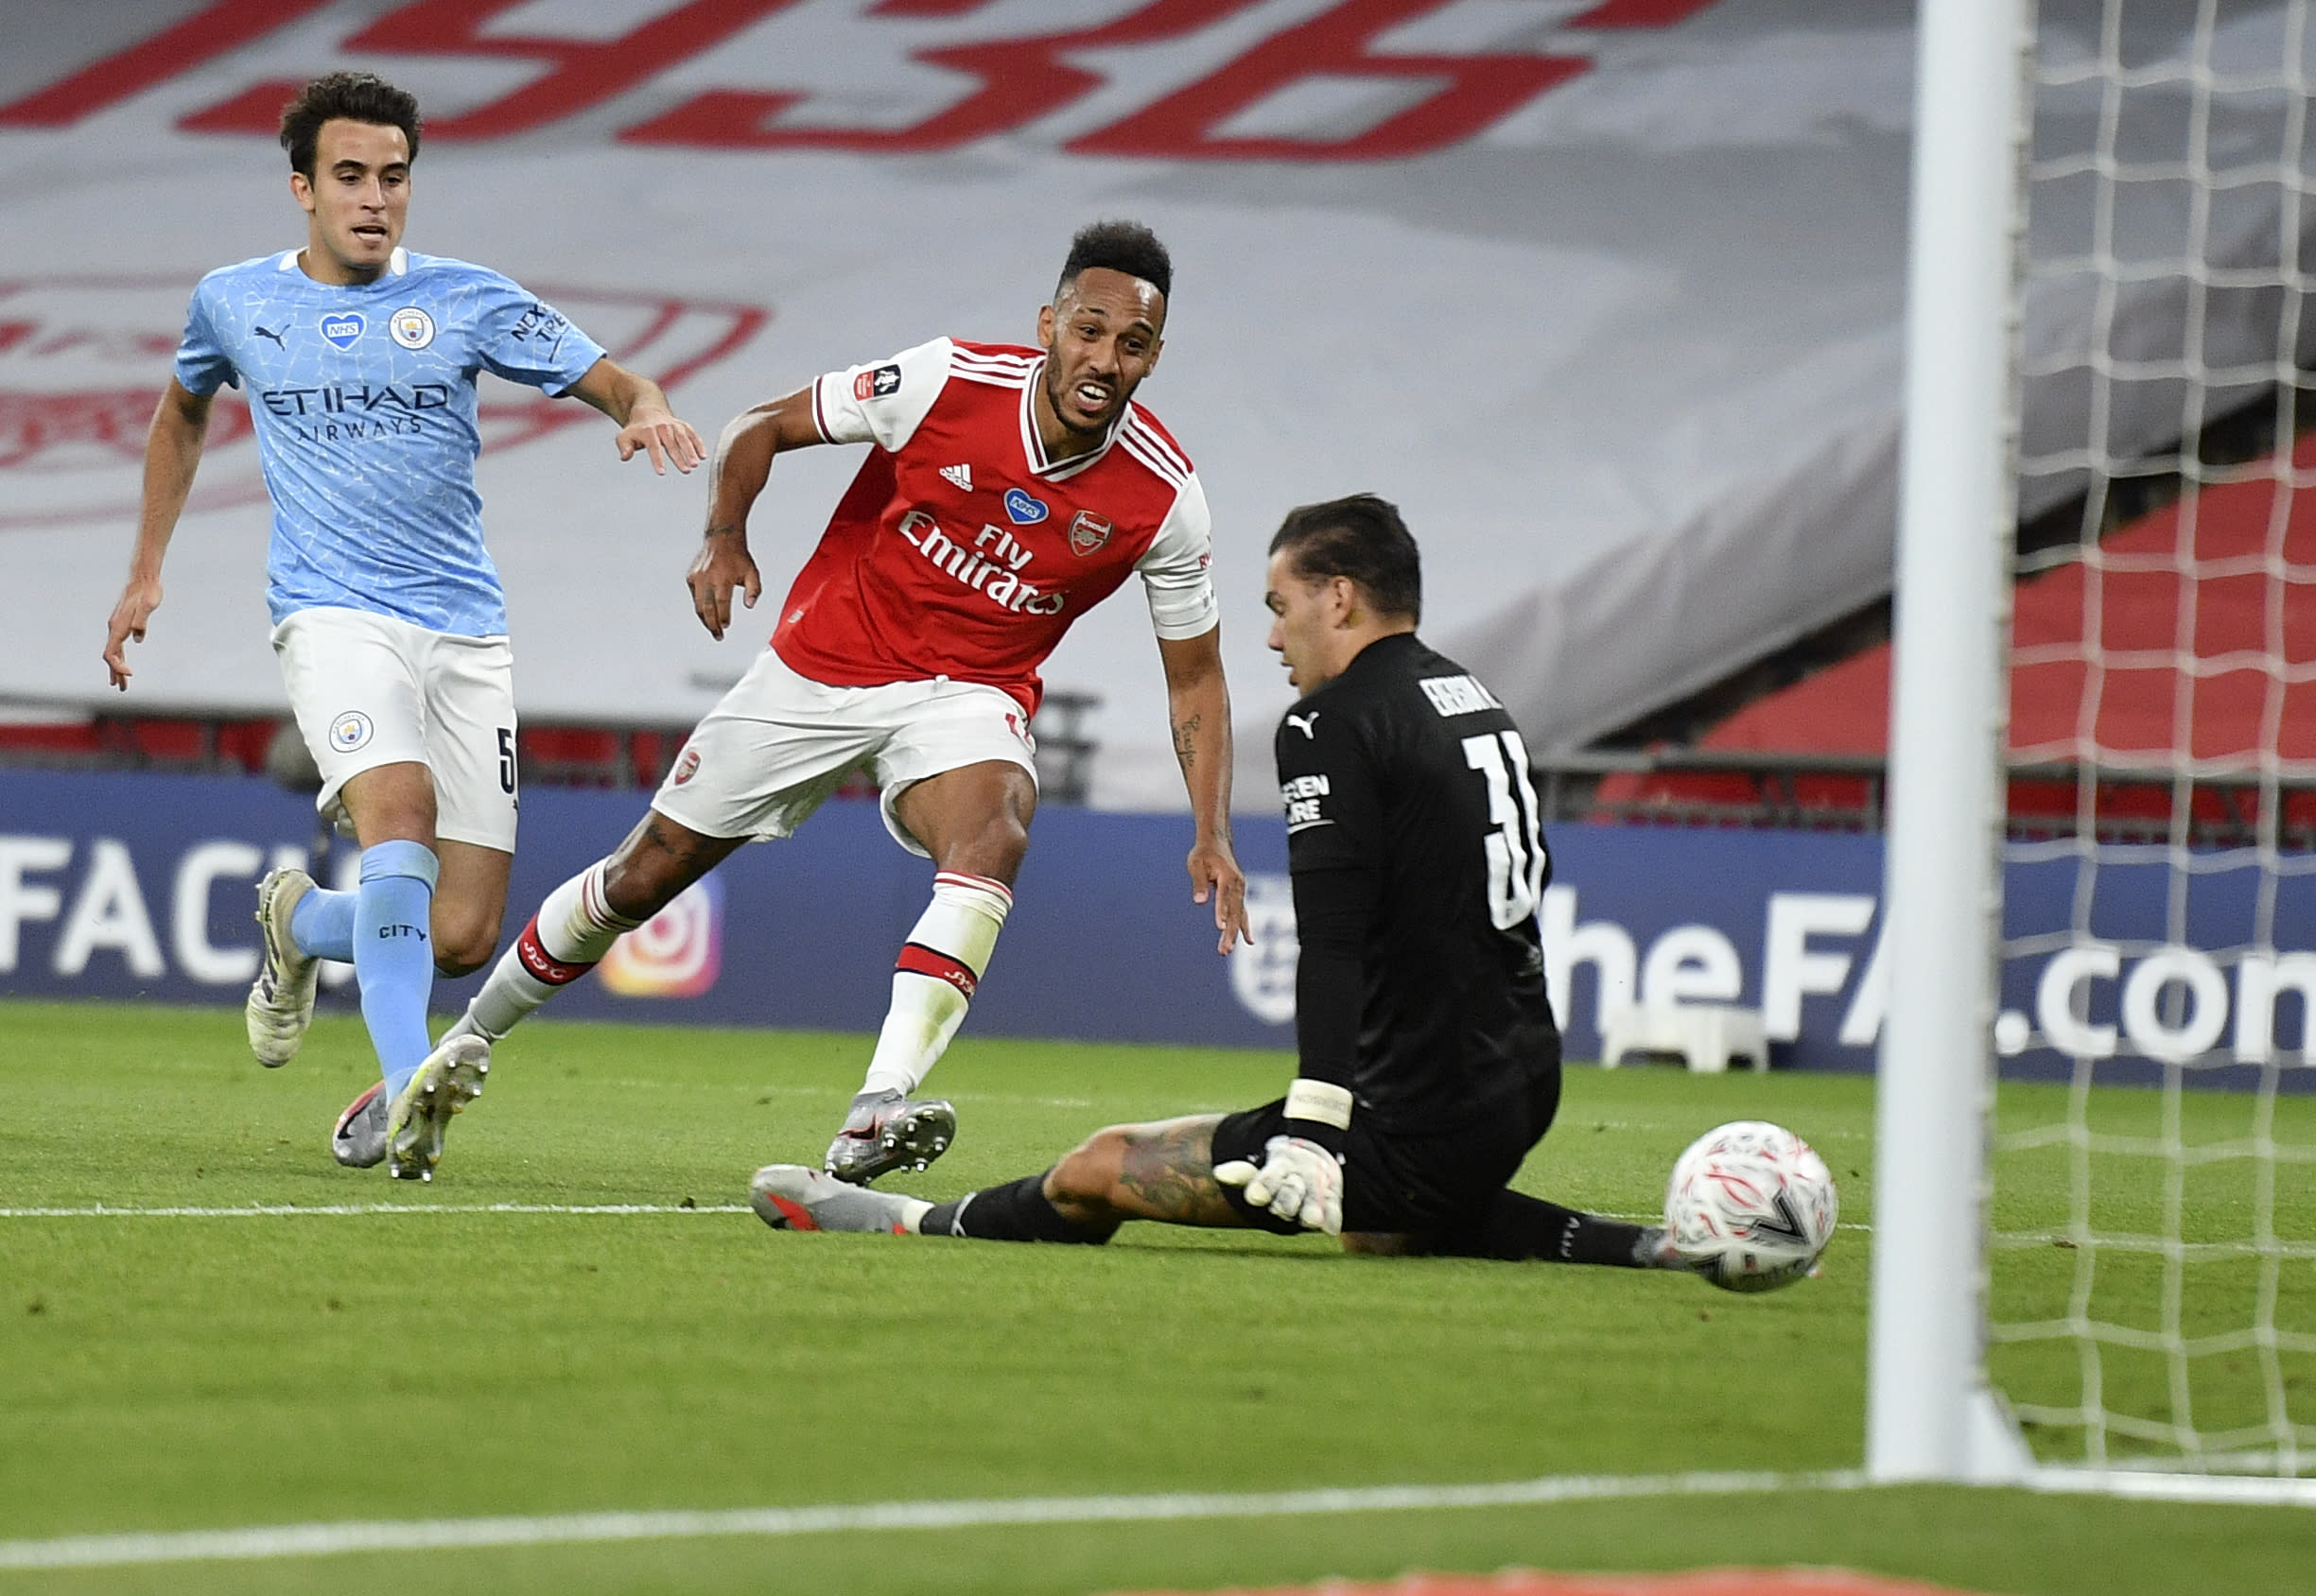 Arsenal's Pierre-Emerick Aubameyang, centre, scores his team's second goal during the FA Cup semifinal soccer match between Arsenal and Manchester City at Wembley in London, England, Saturday, July 18, 2020. (AP Photo/Justin Tallis,Pool)